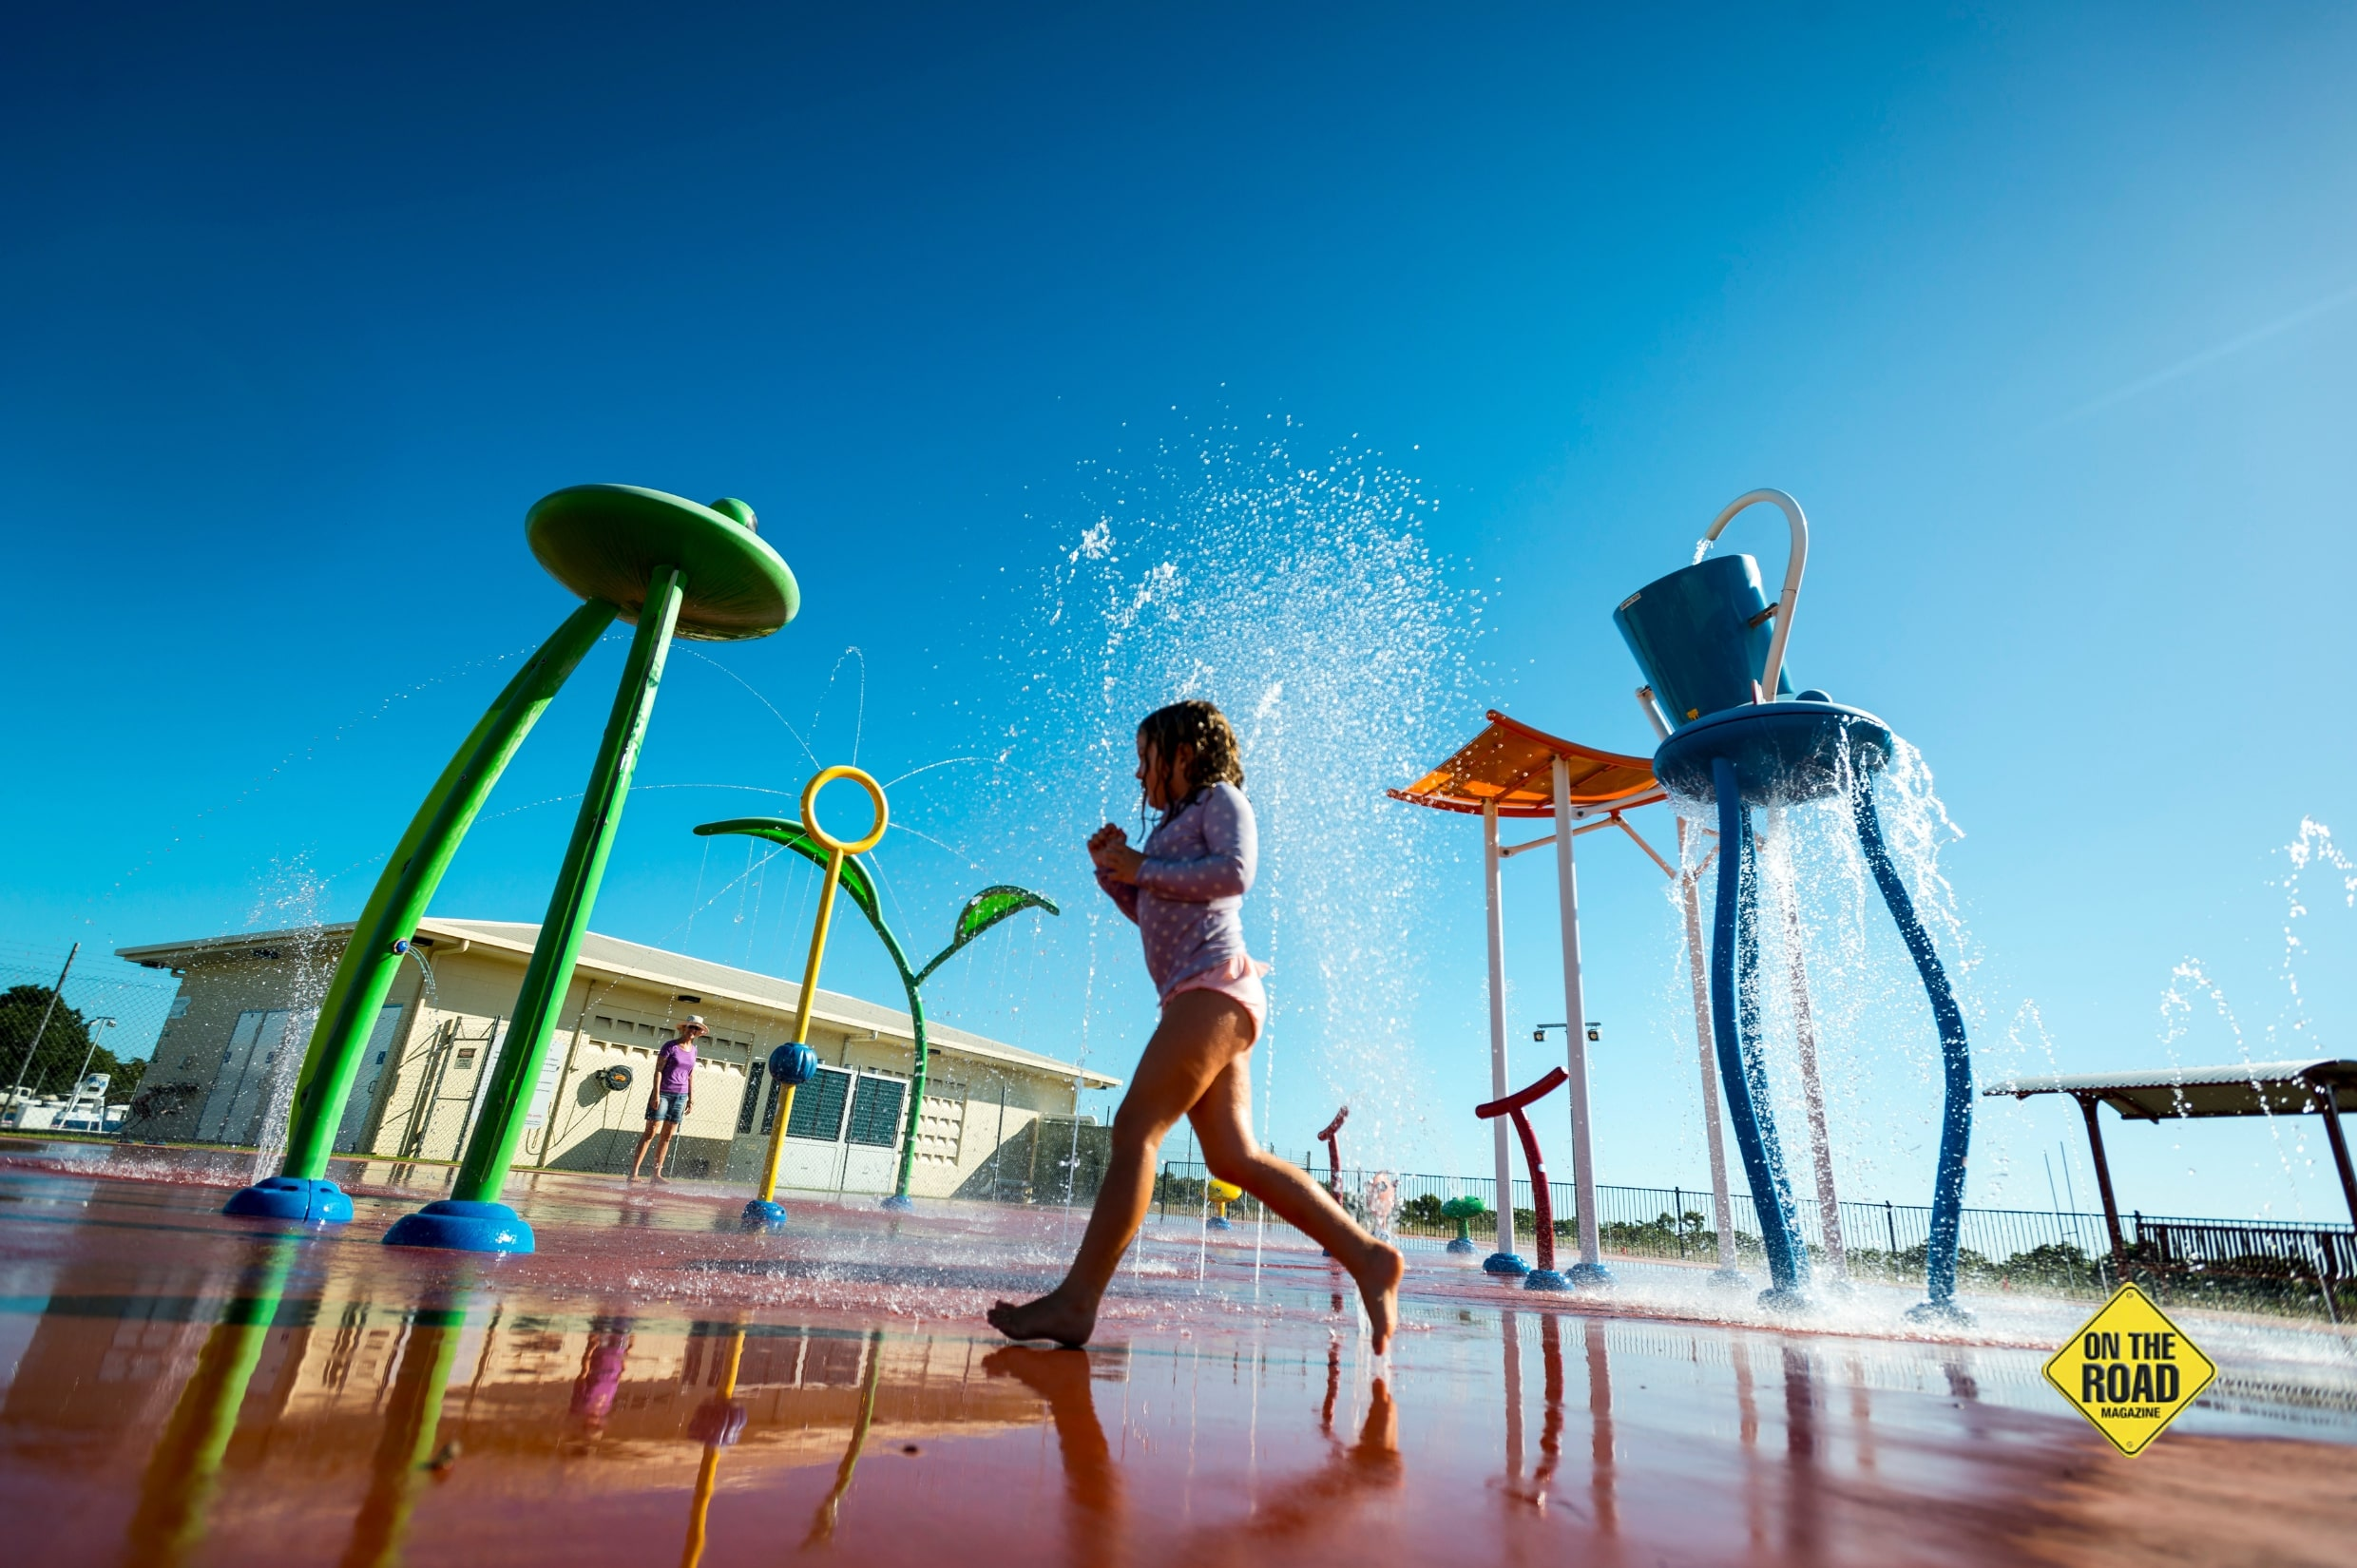 Theres fun for kids at water playparks in Karumba and nearby Normanton-min